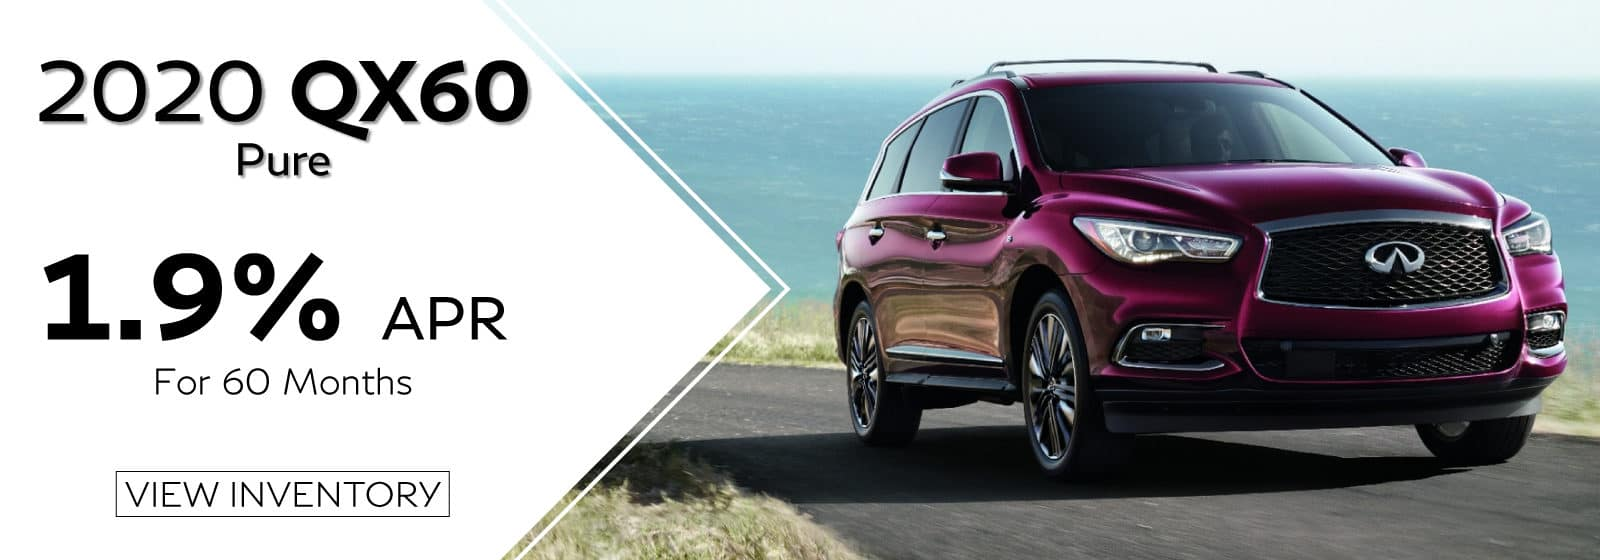 2020 QX60. 1.9% APR financing for 60 months. Purple QX60 driving on road with ocean in background. View Inventory button.